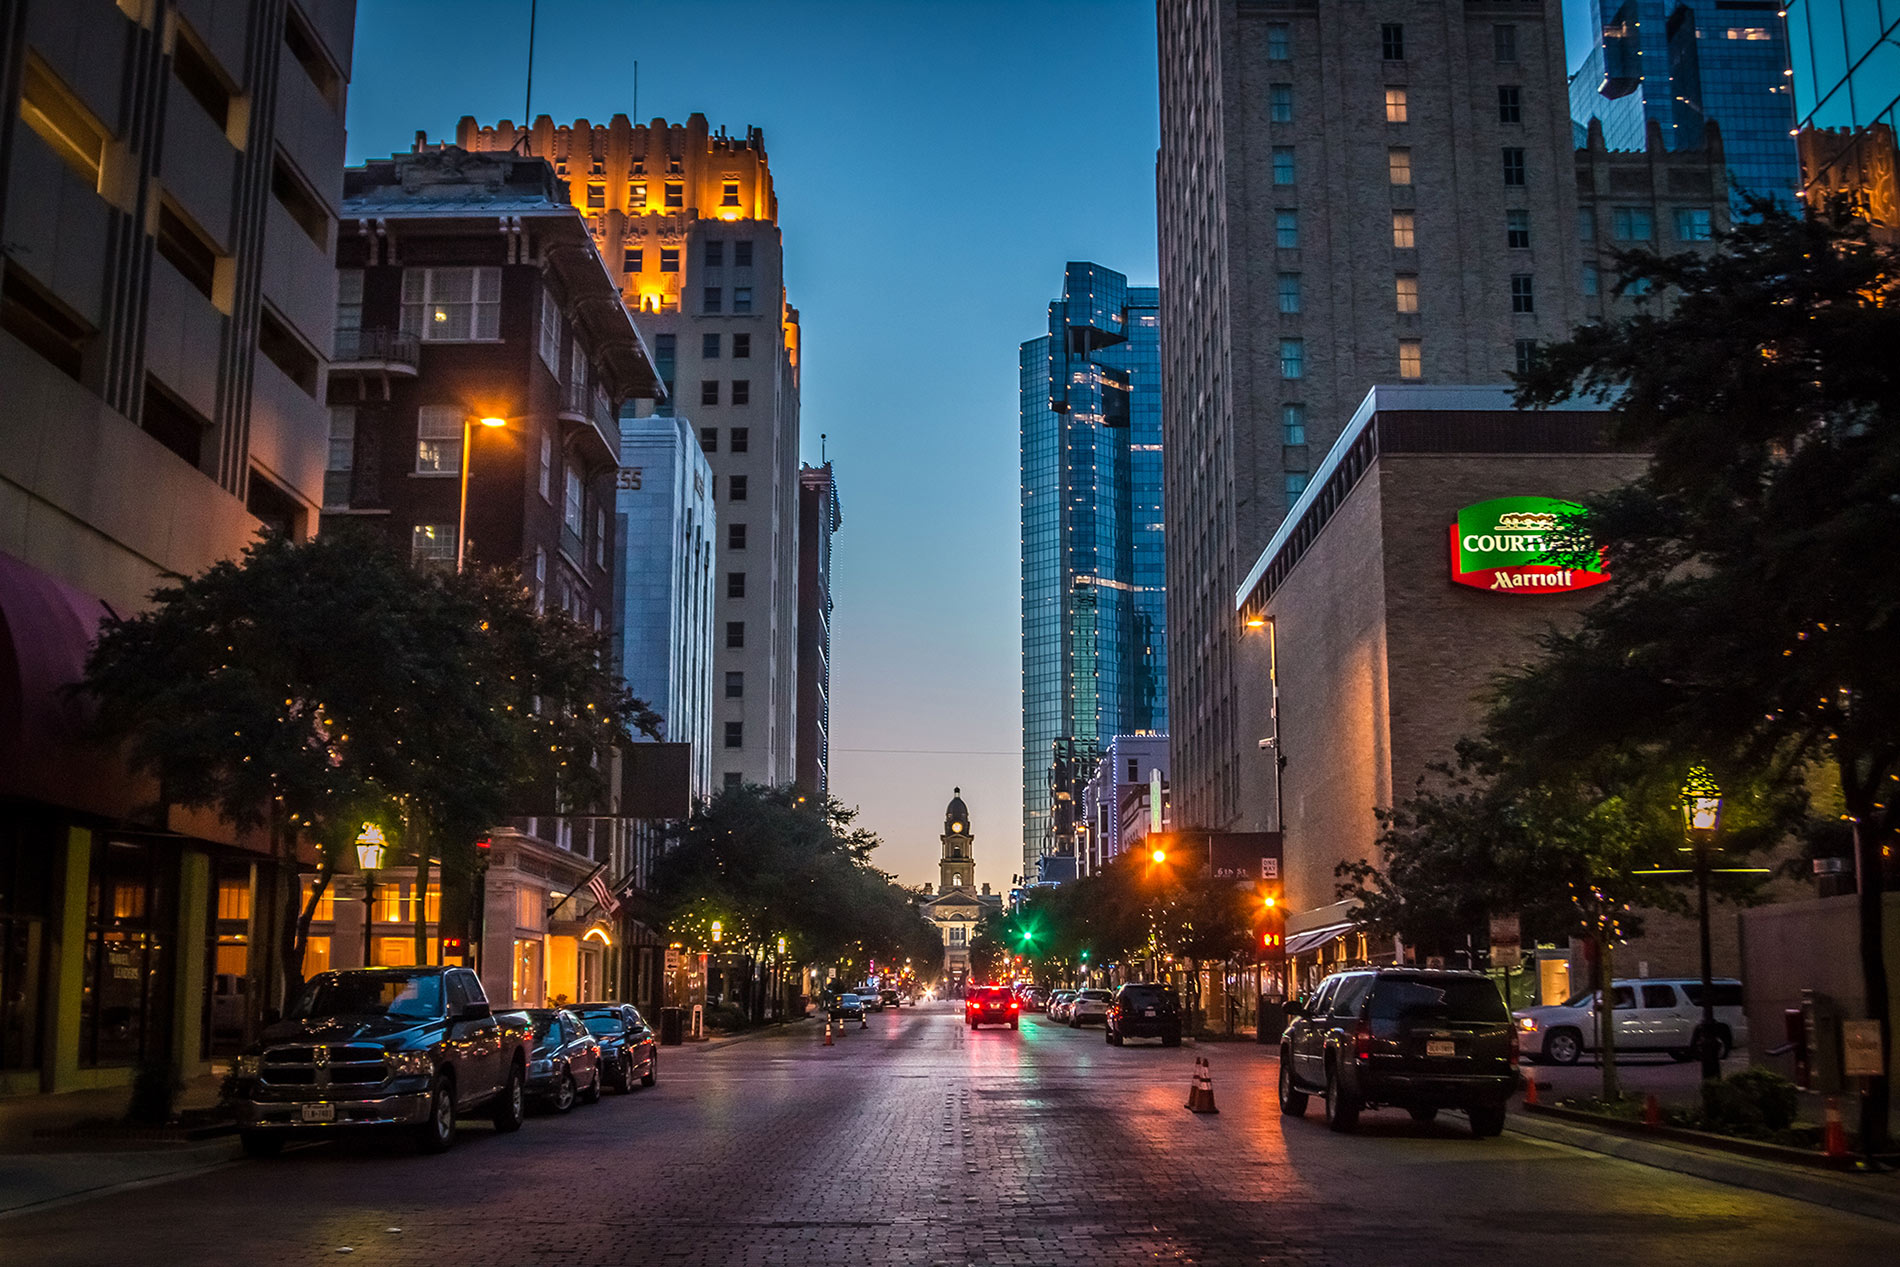 Fort Worth at Dusk